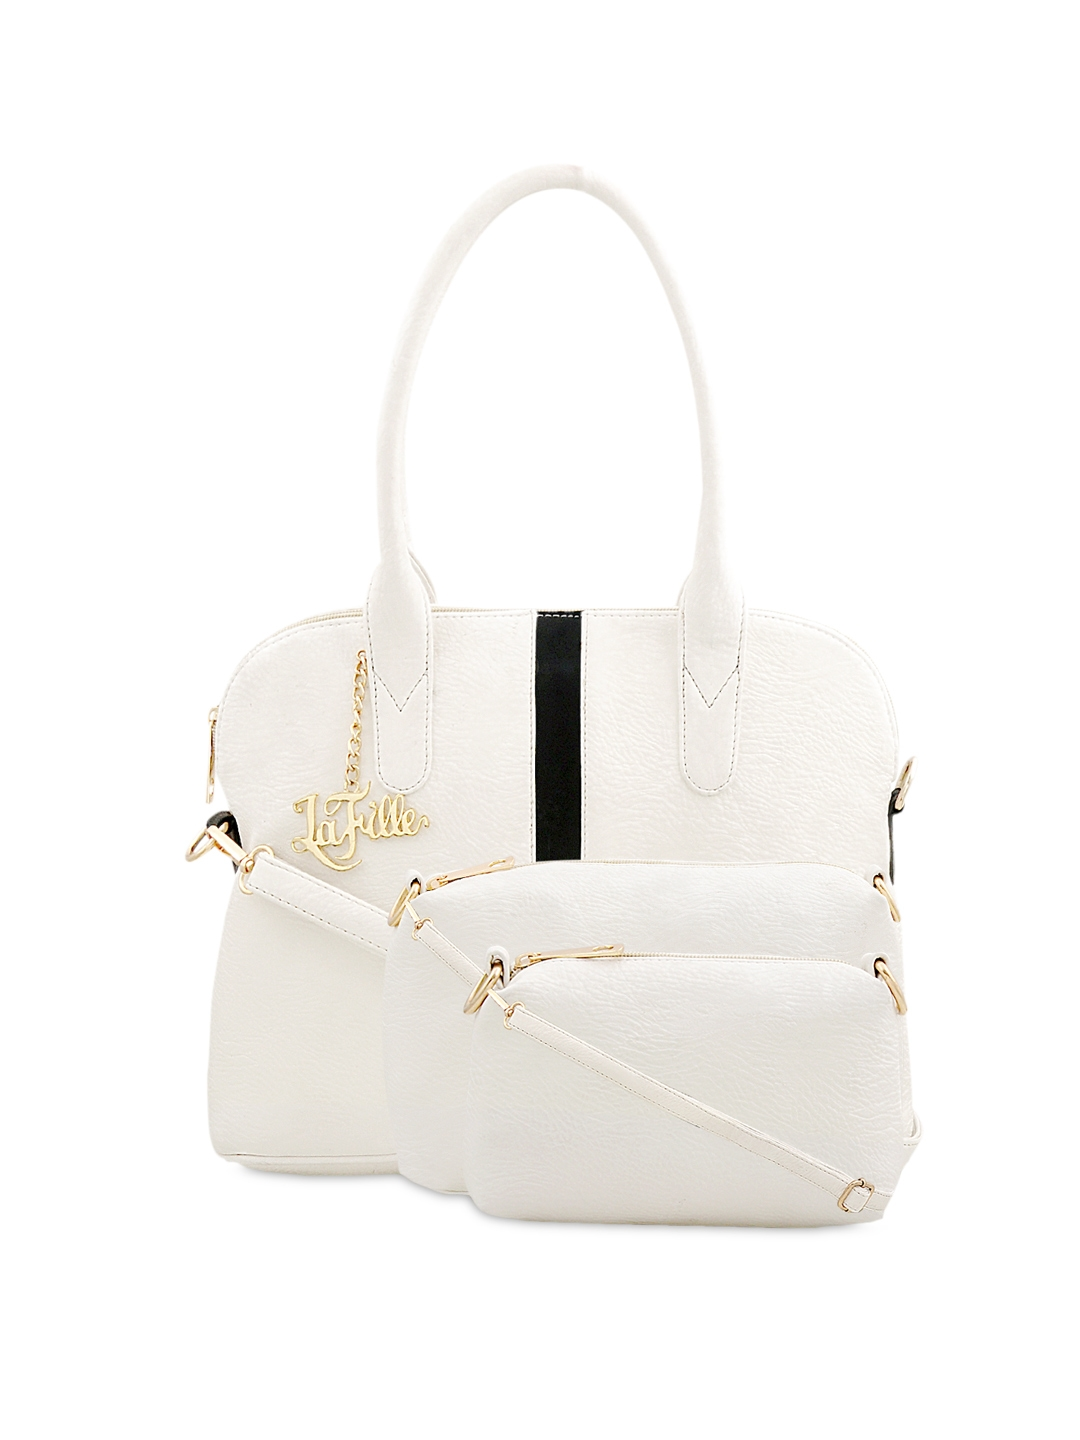 LaFille White Solid Handheld Bag with 2 Sling Bags